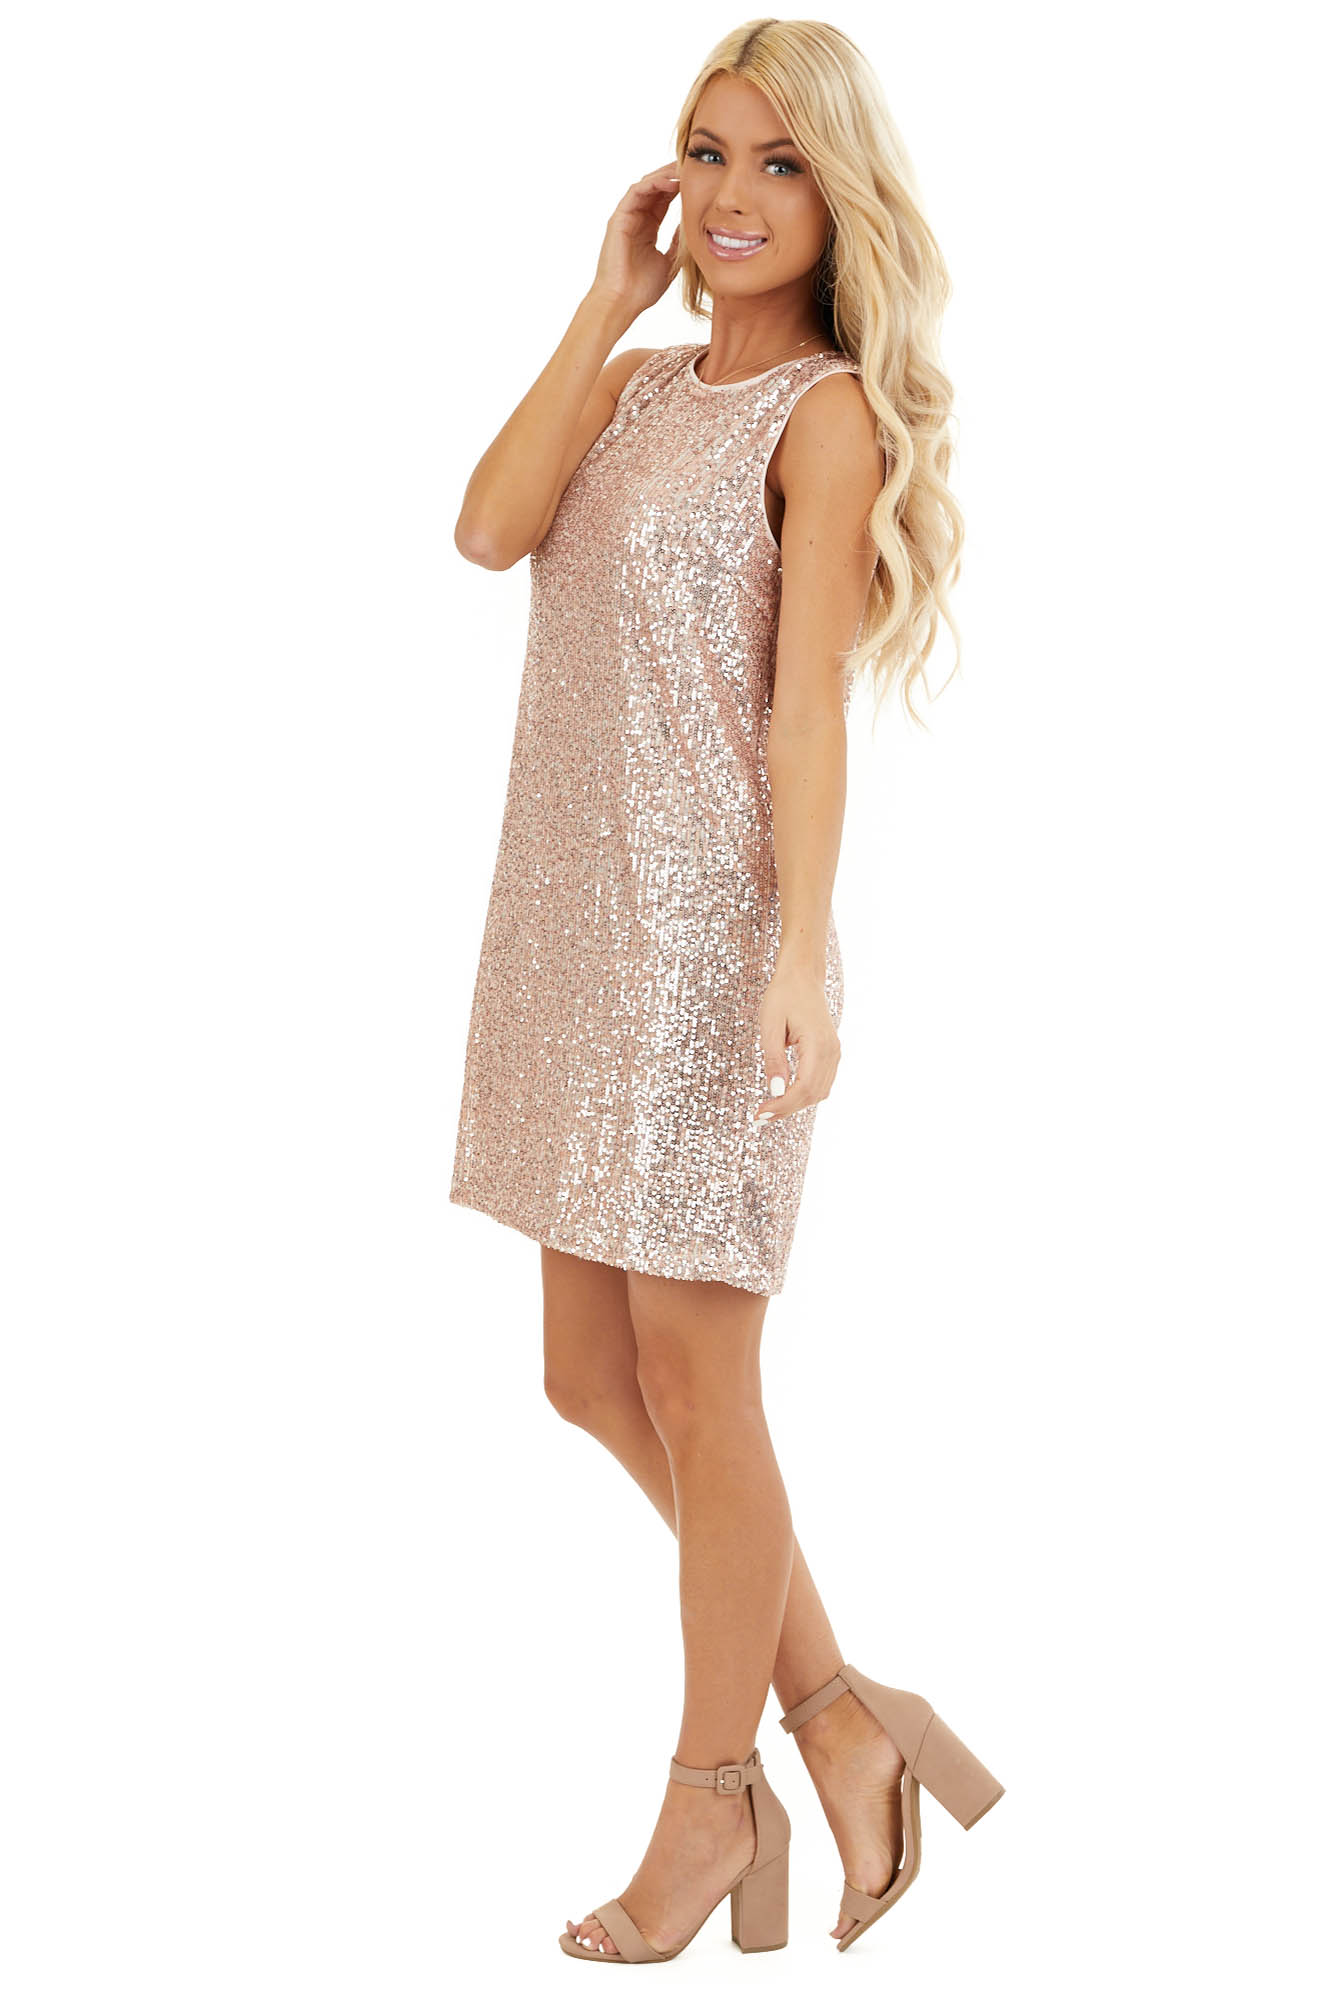 Blush Sequin Sleeveless Mini Dress with Back Keyhole Closure side full body